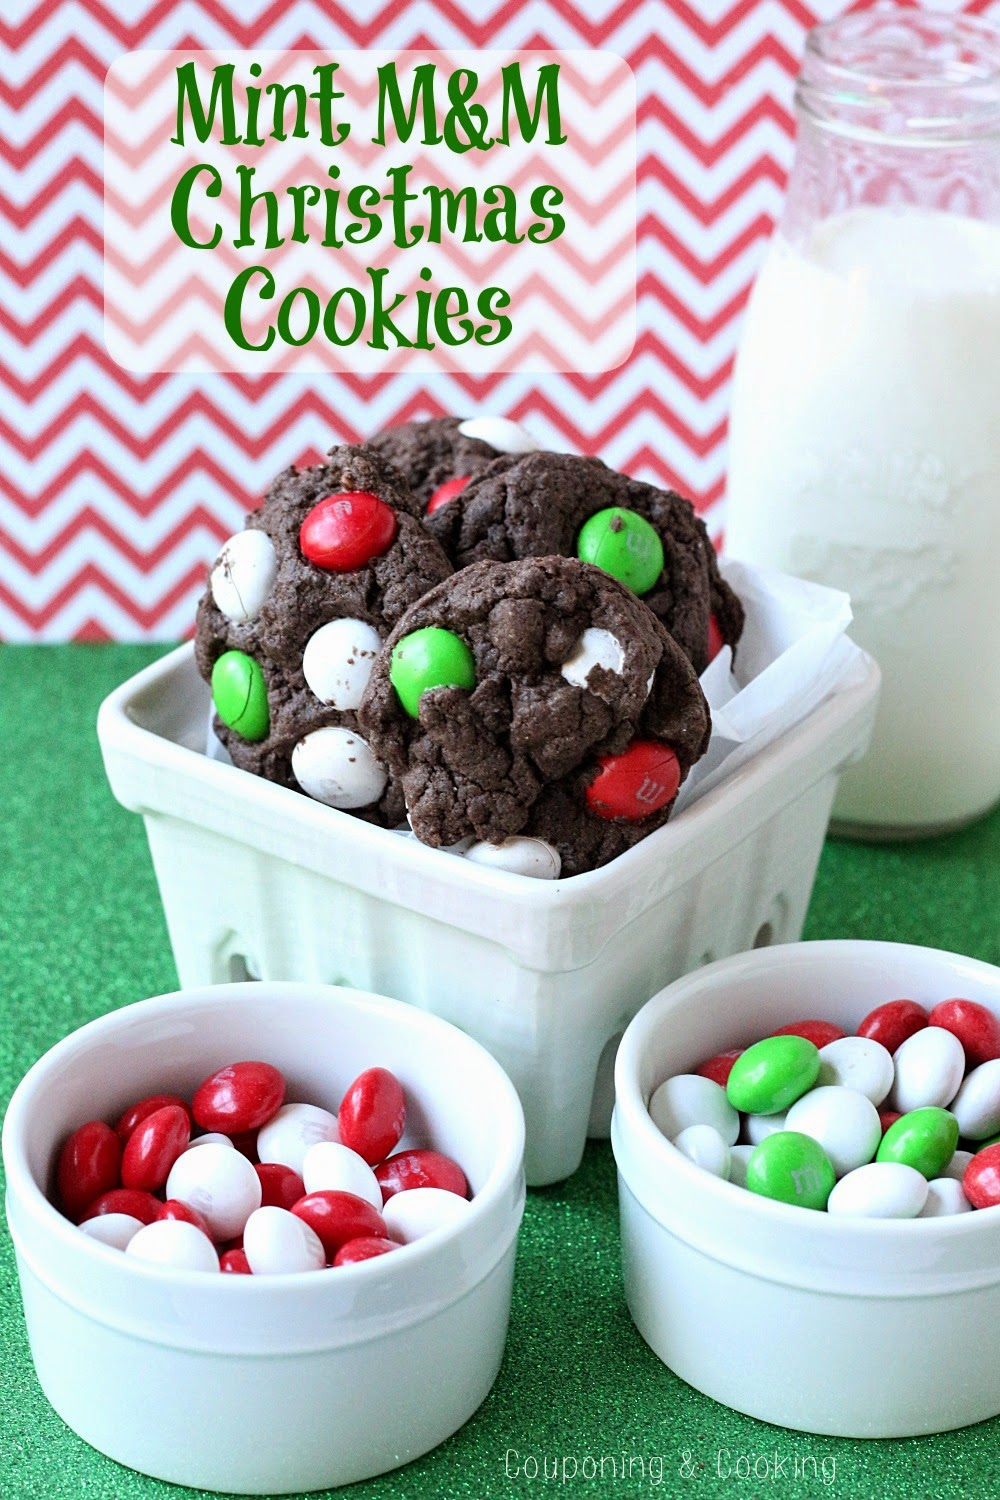 Tobins' Tastes: Mint M&M Chocolate Christmas Cookies